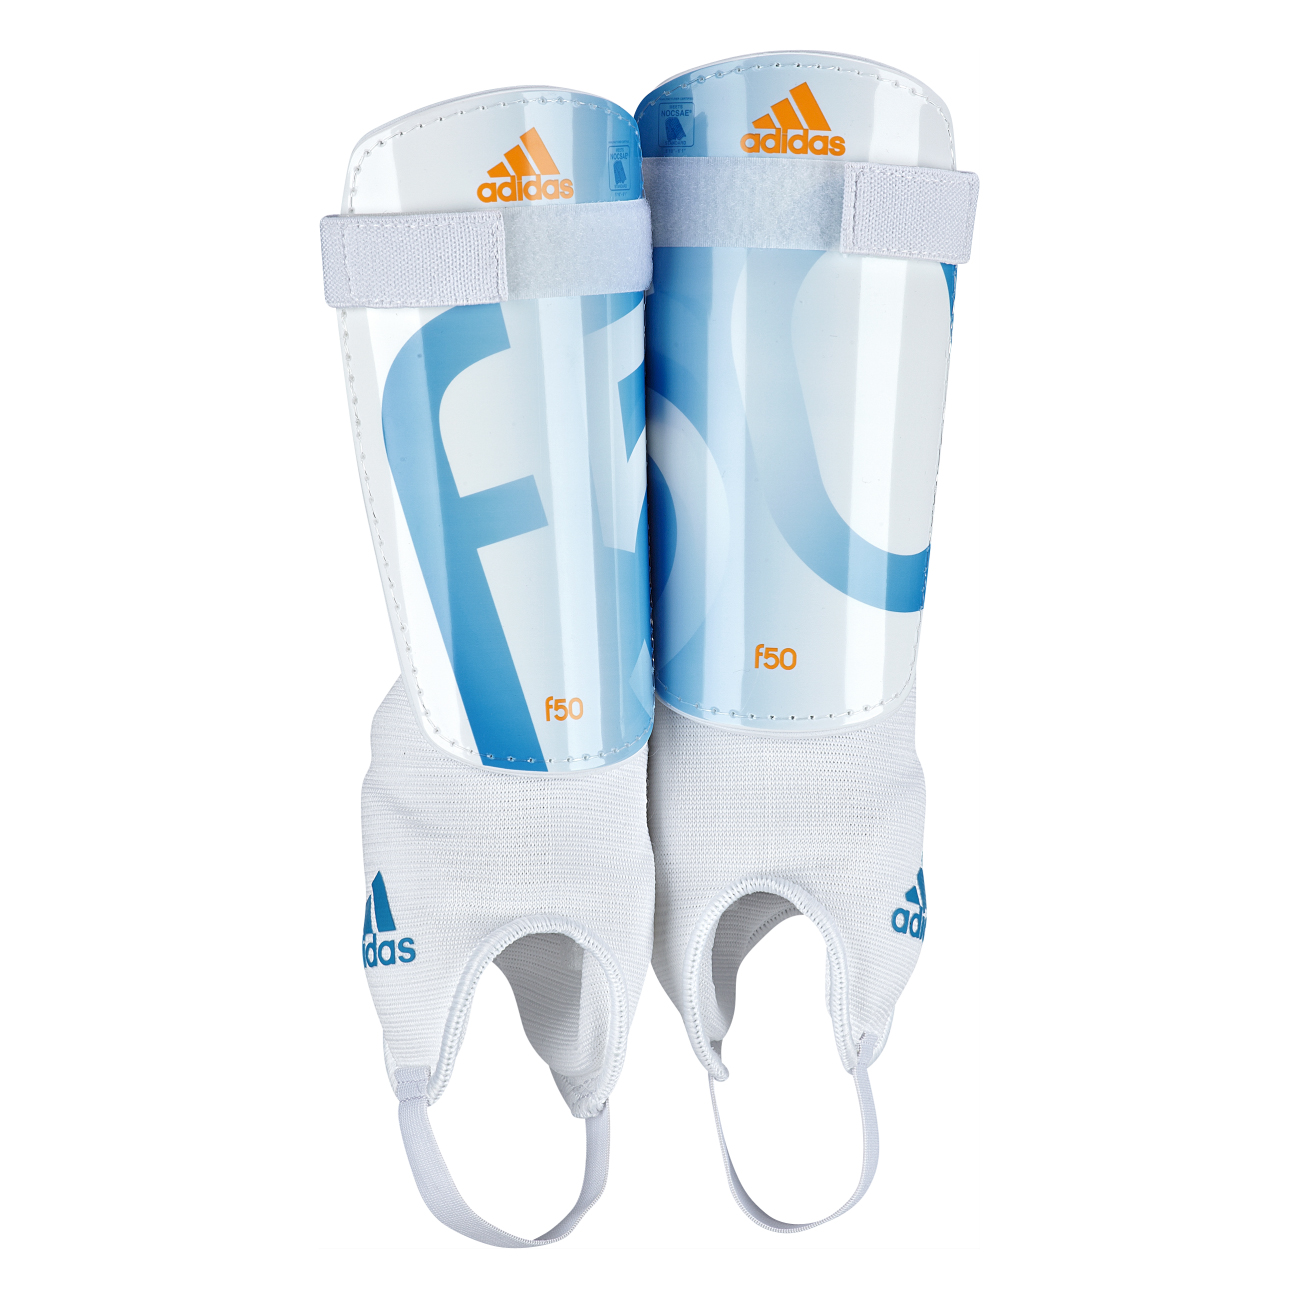 Adidas F50 Replique Shinguards White